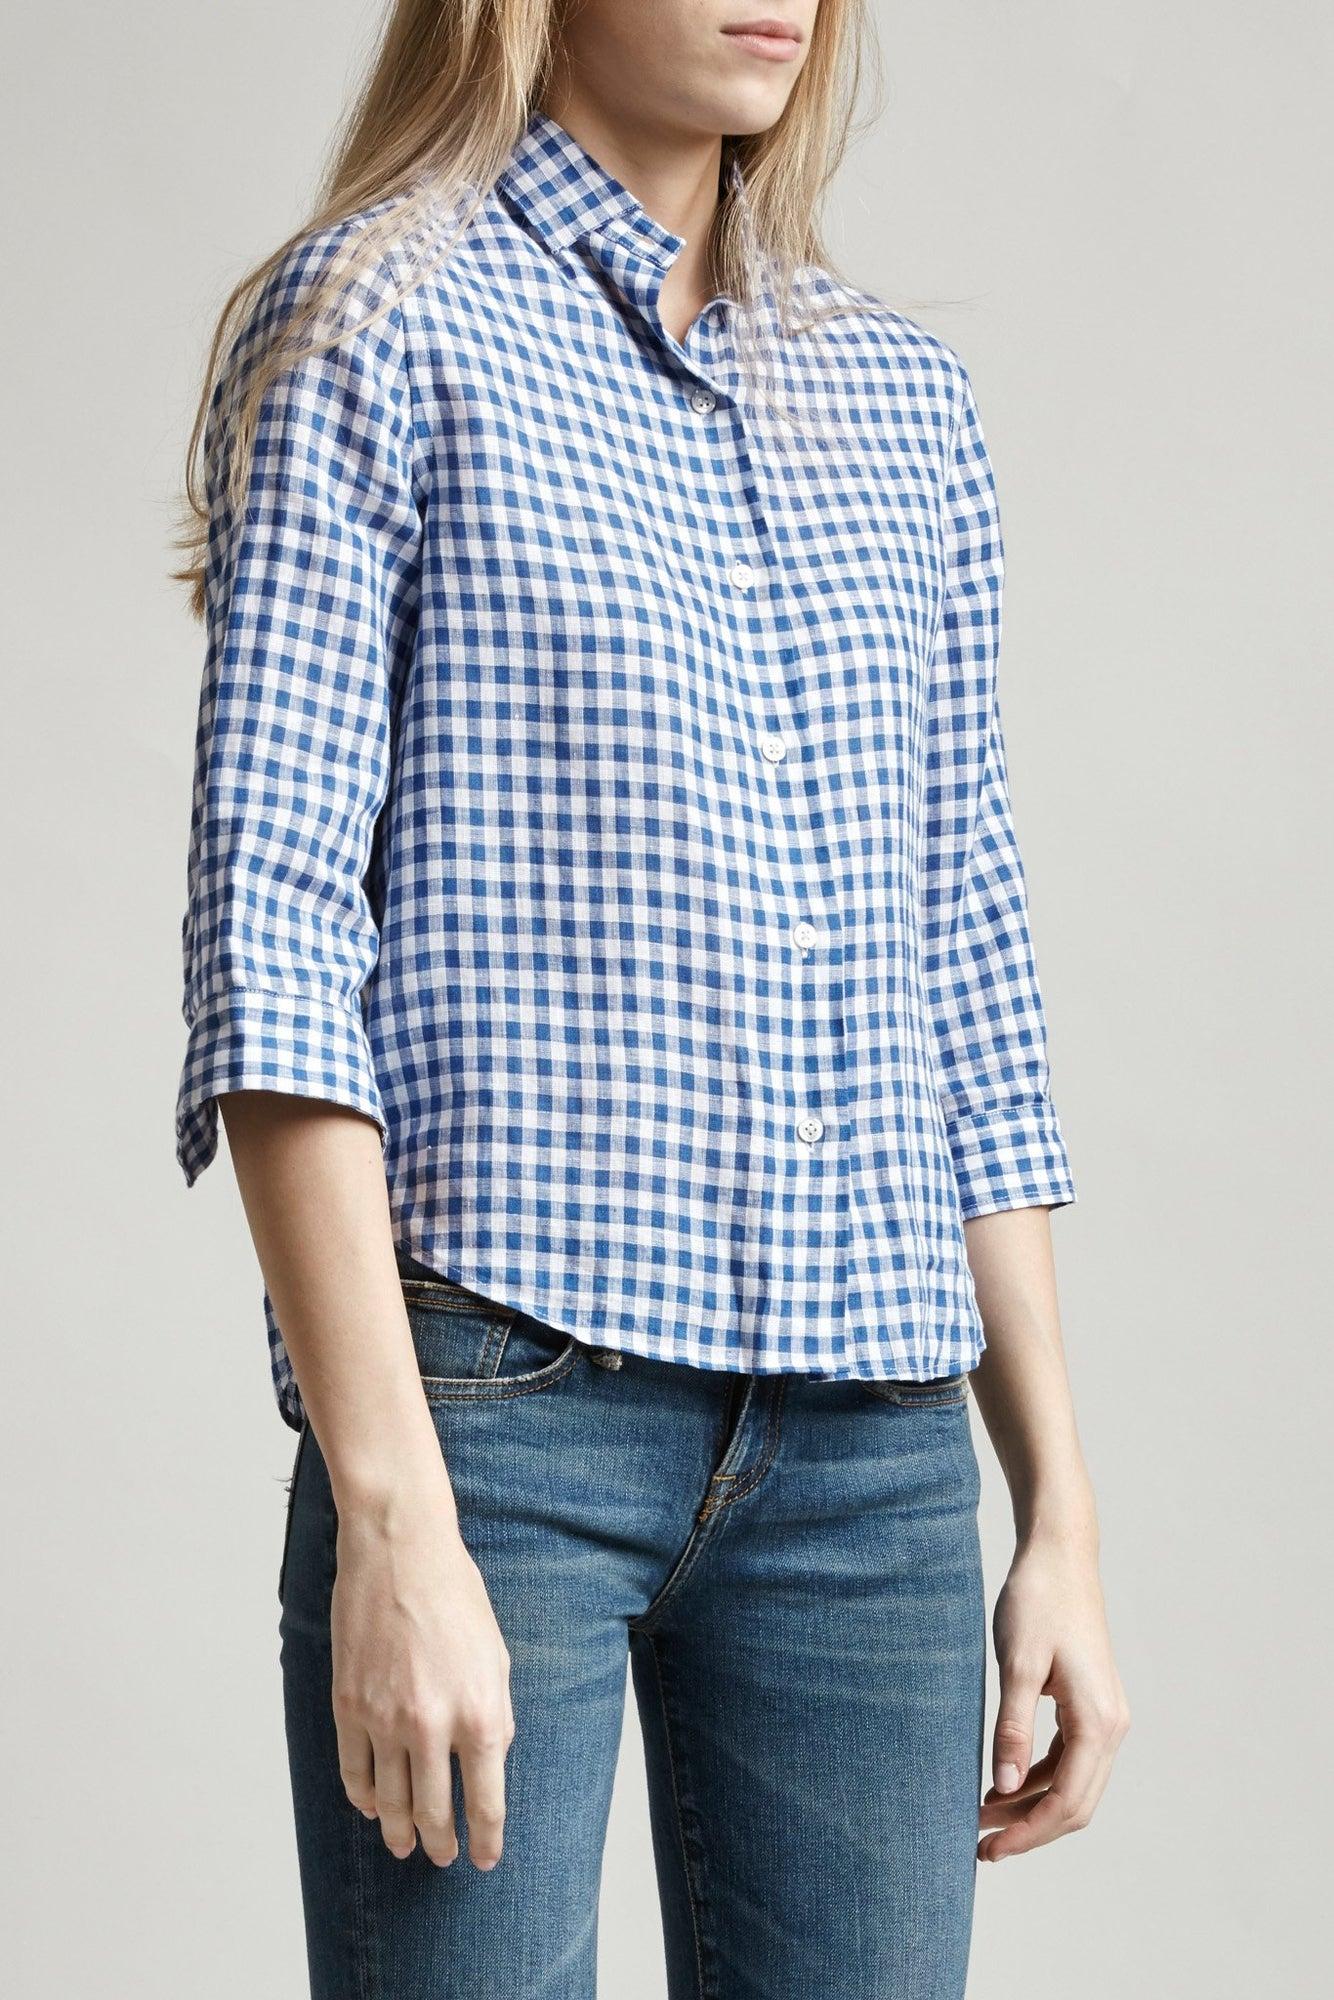 3/4 Sleeve Cowboy - Blue/White Mini Check